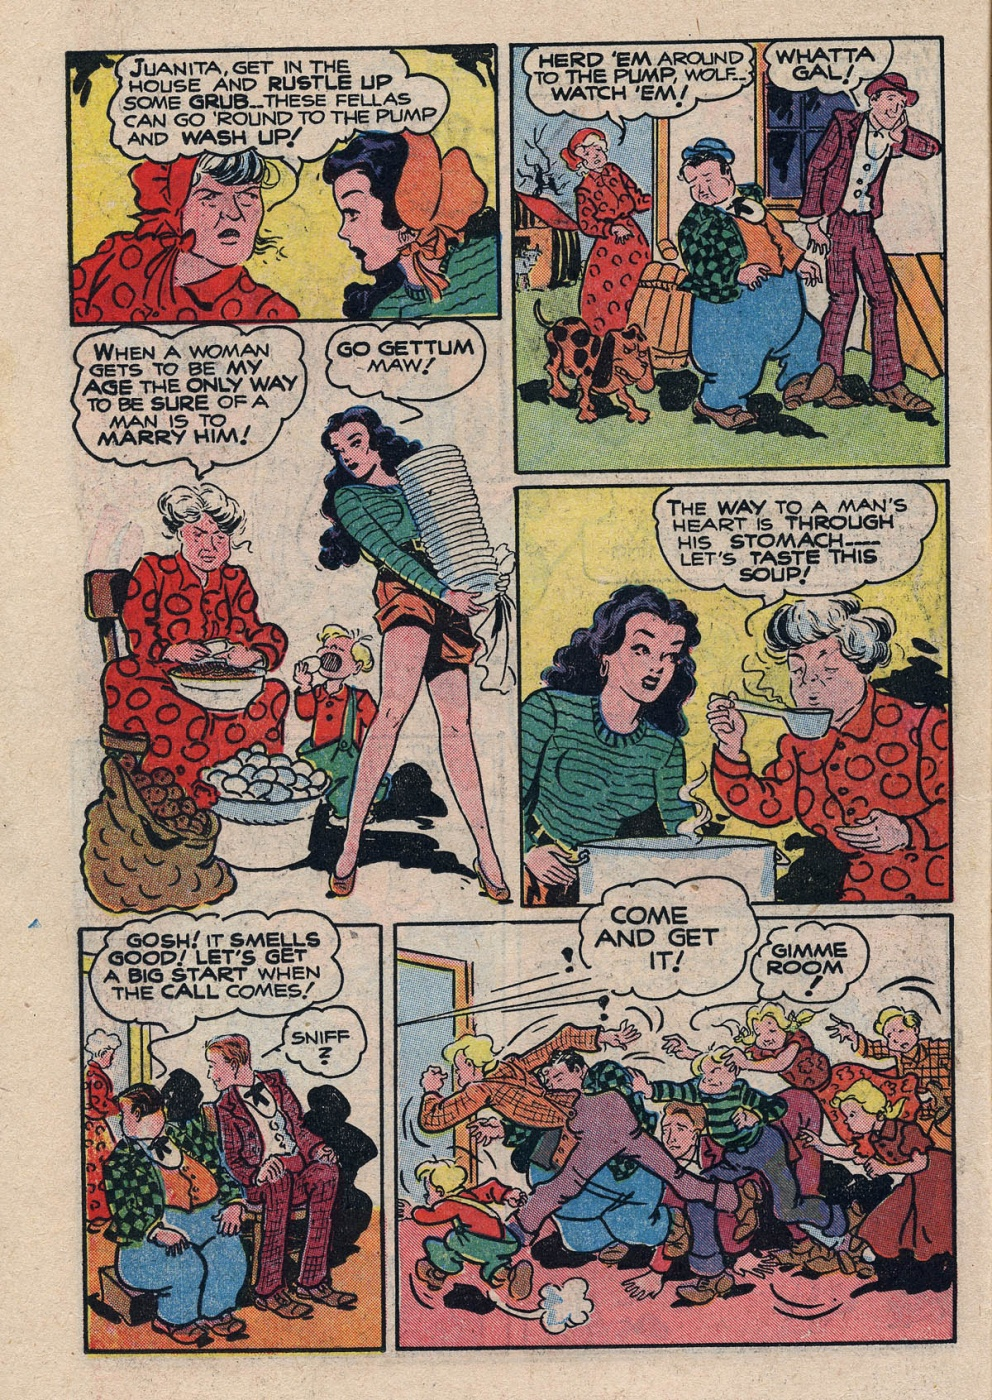 Funny Comic Strips - Abbott and Costello 001 (Feb 1948) 14